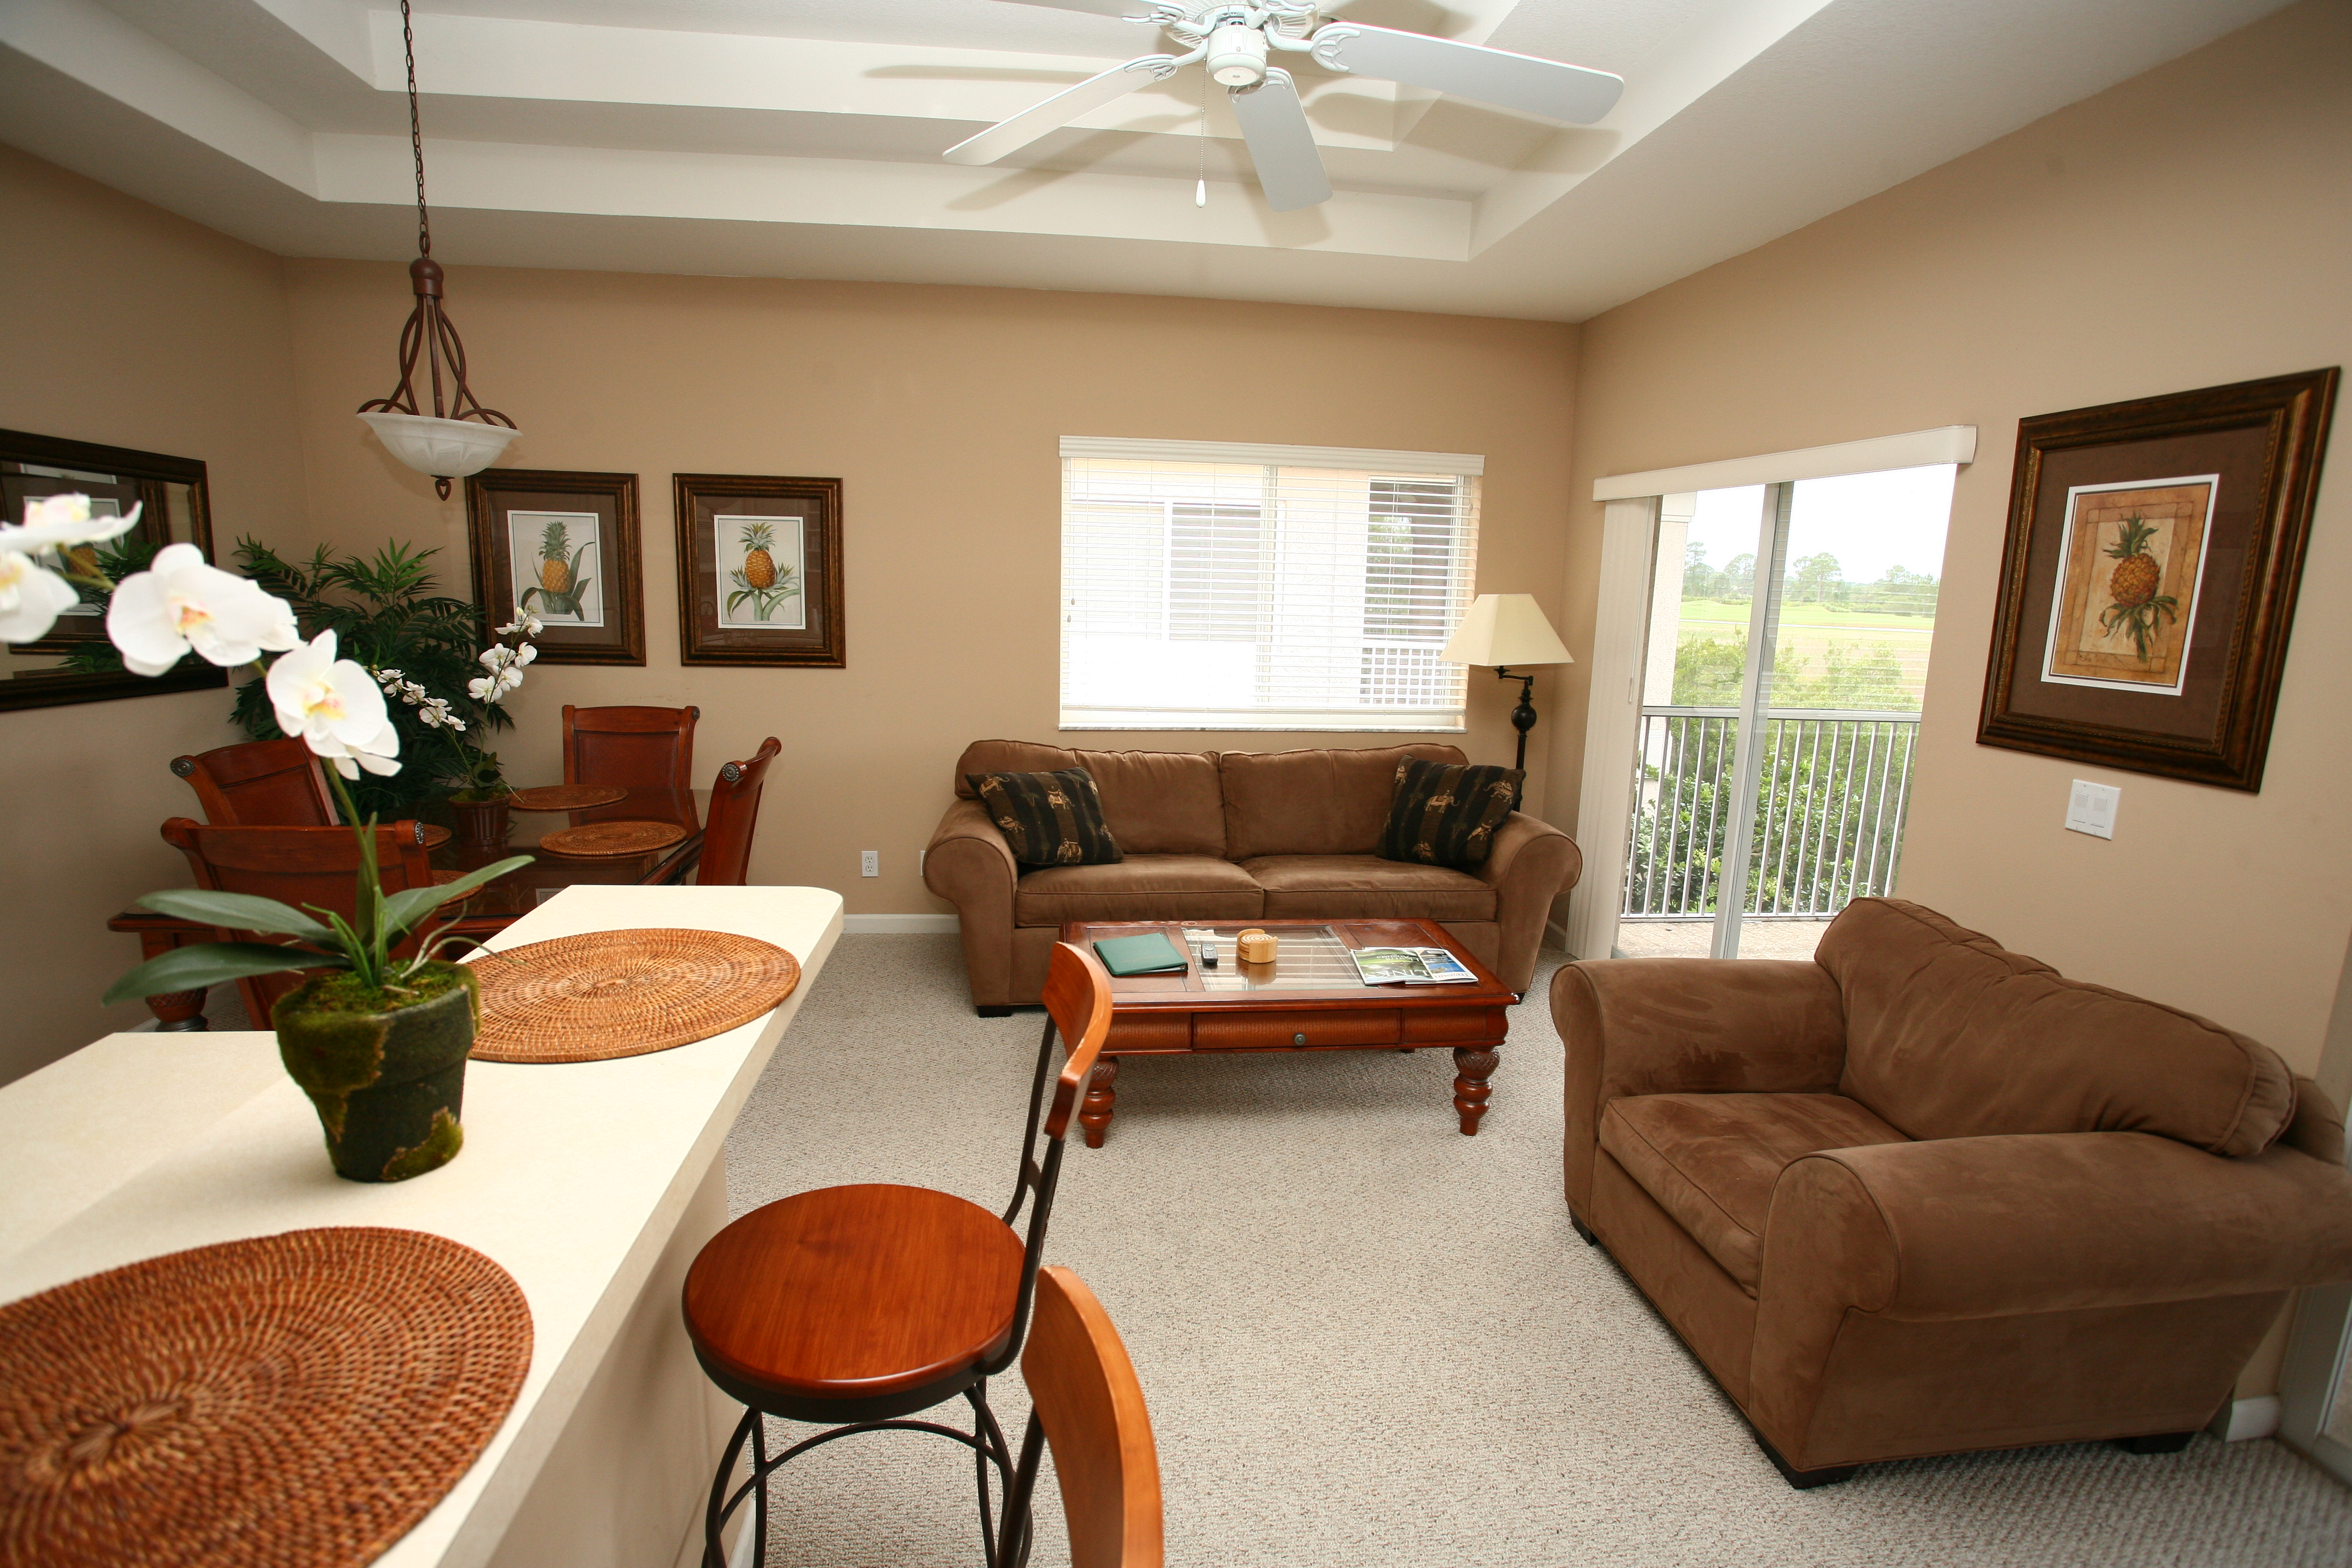 Port st lucie extended stay perfect driveperfect drive for A salon solution port st lucie